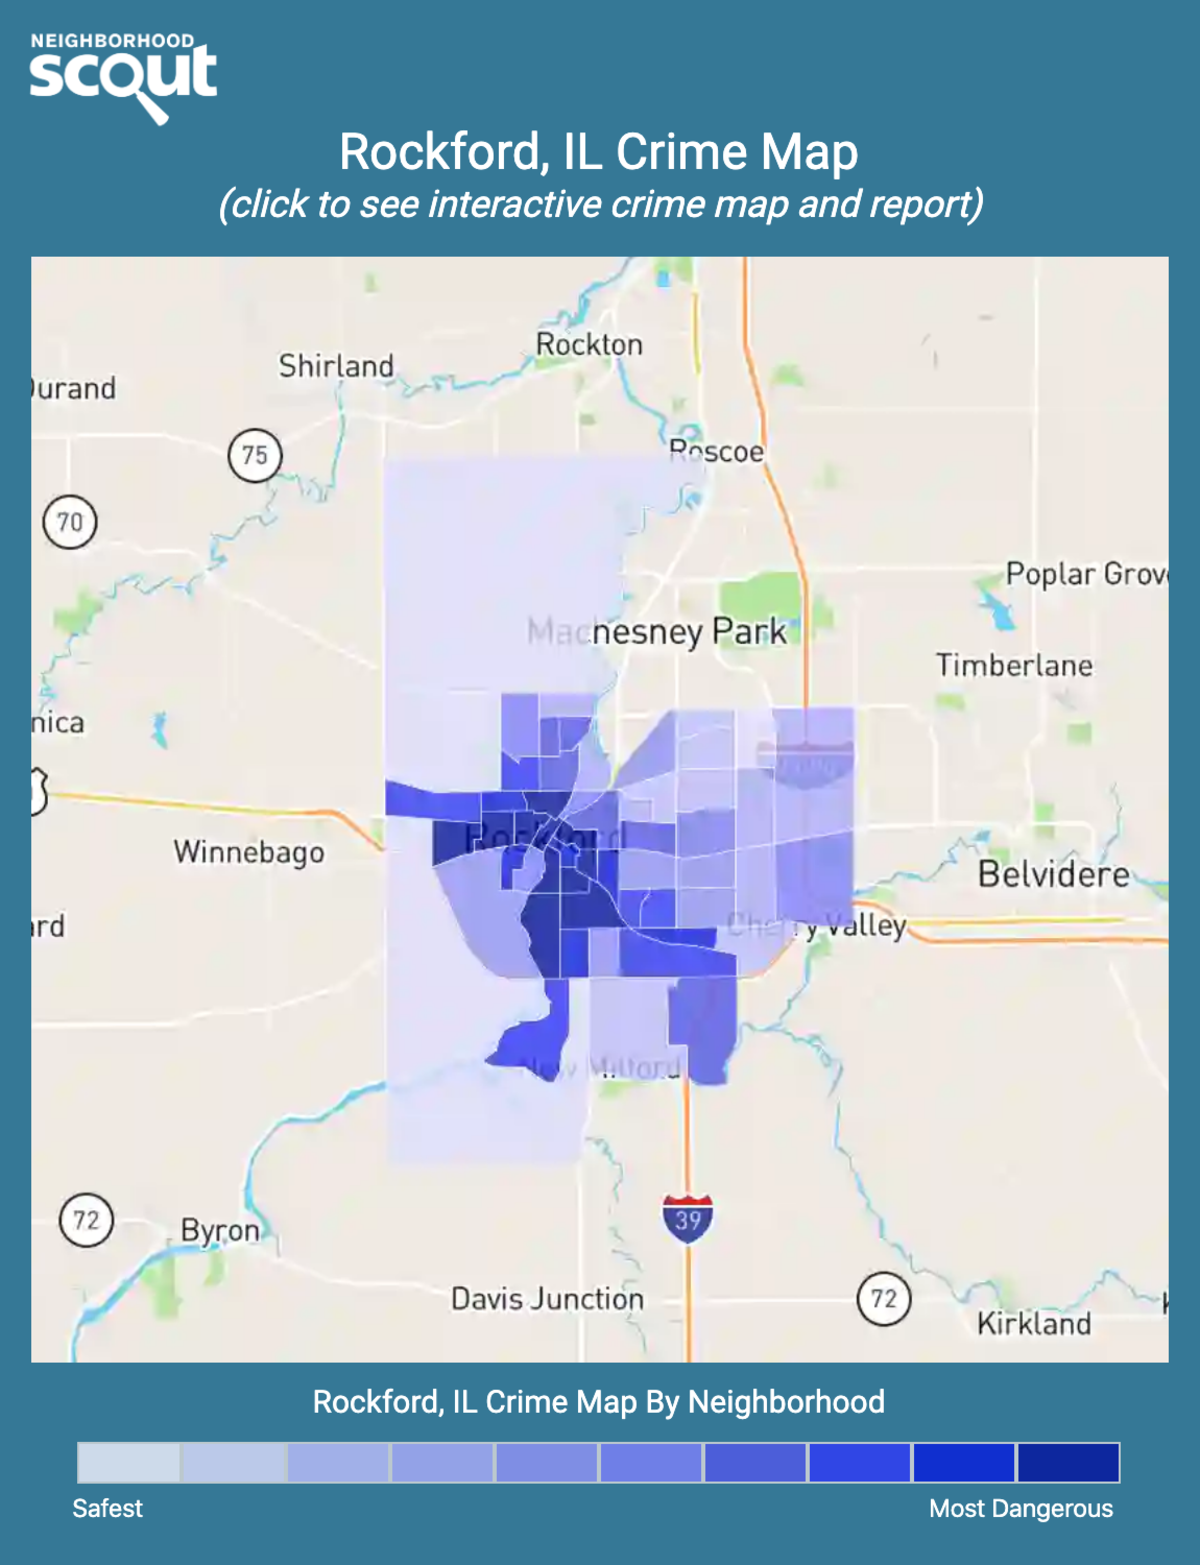 Rockford, Illinois crime map